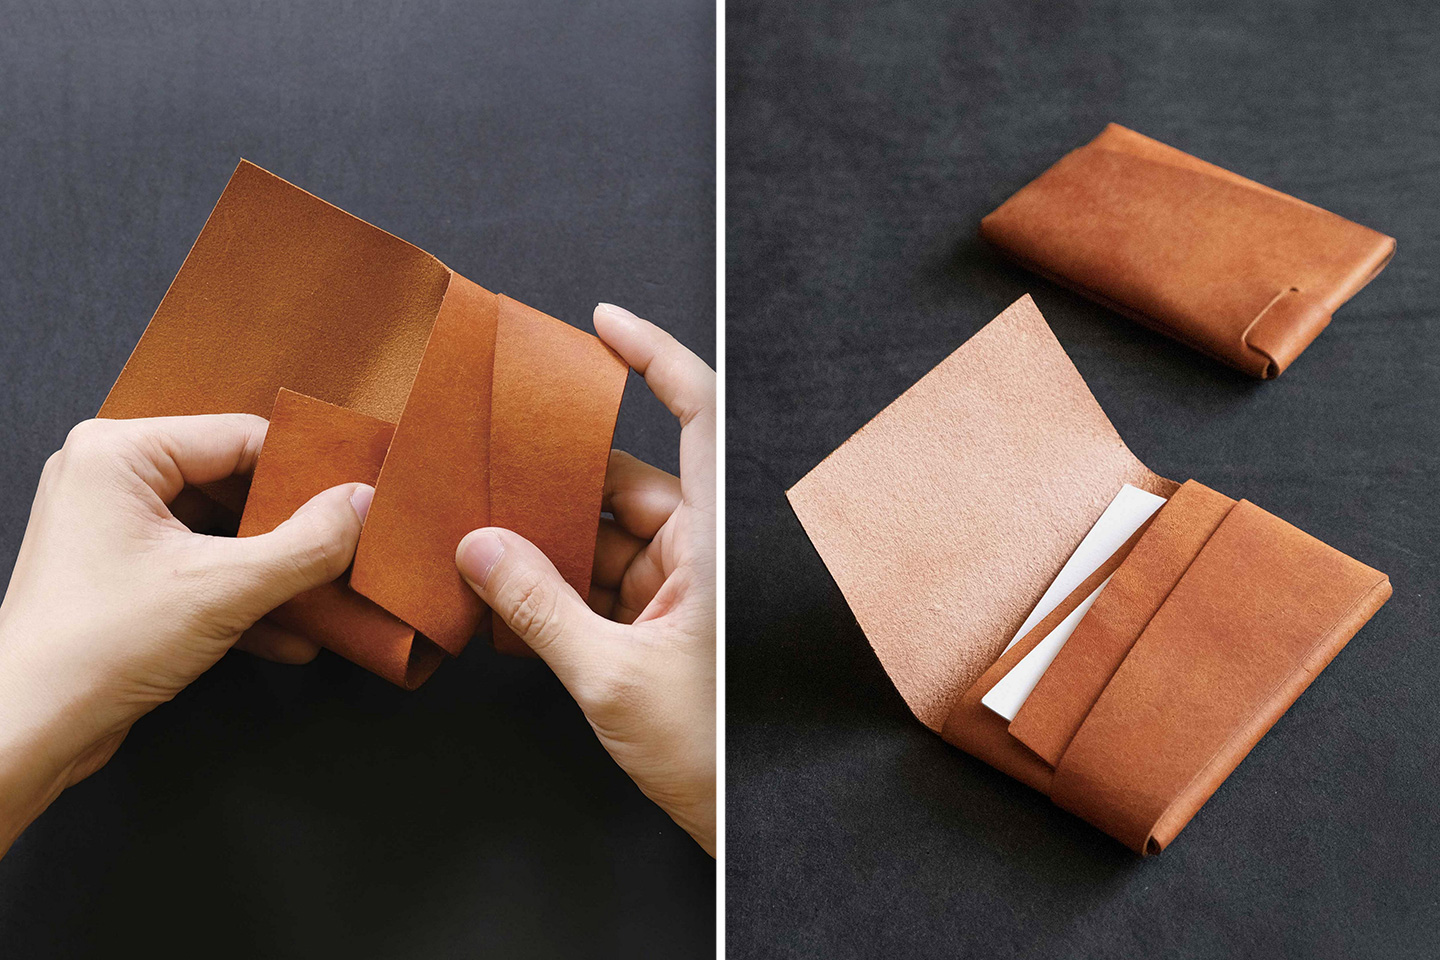 This leather card-holder is made just by folding a single piece of leather – no metal rivets, stitches, or glue